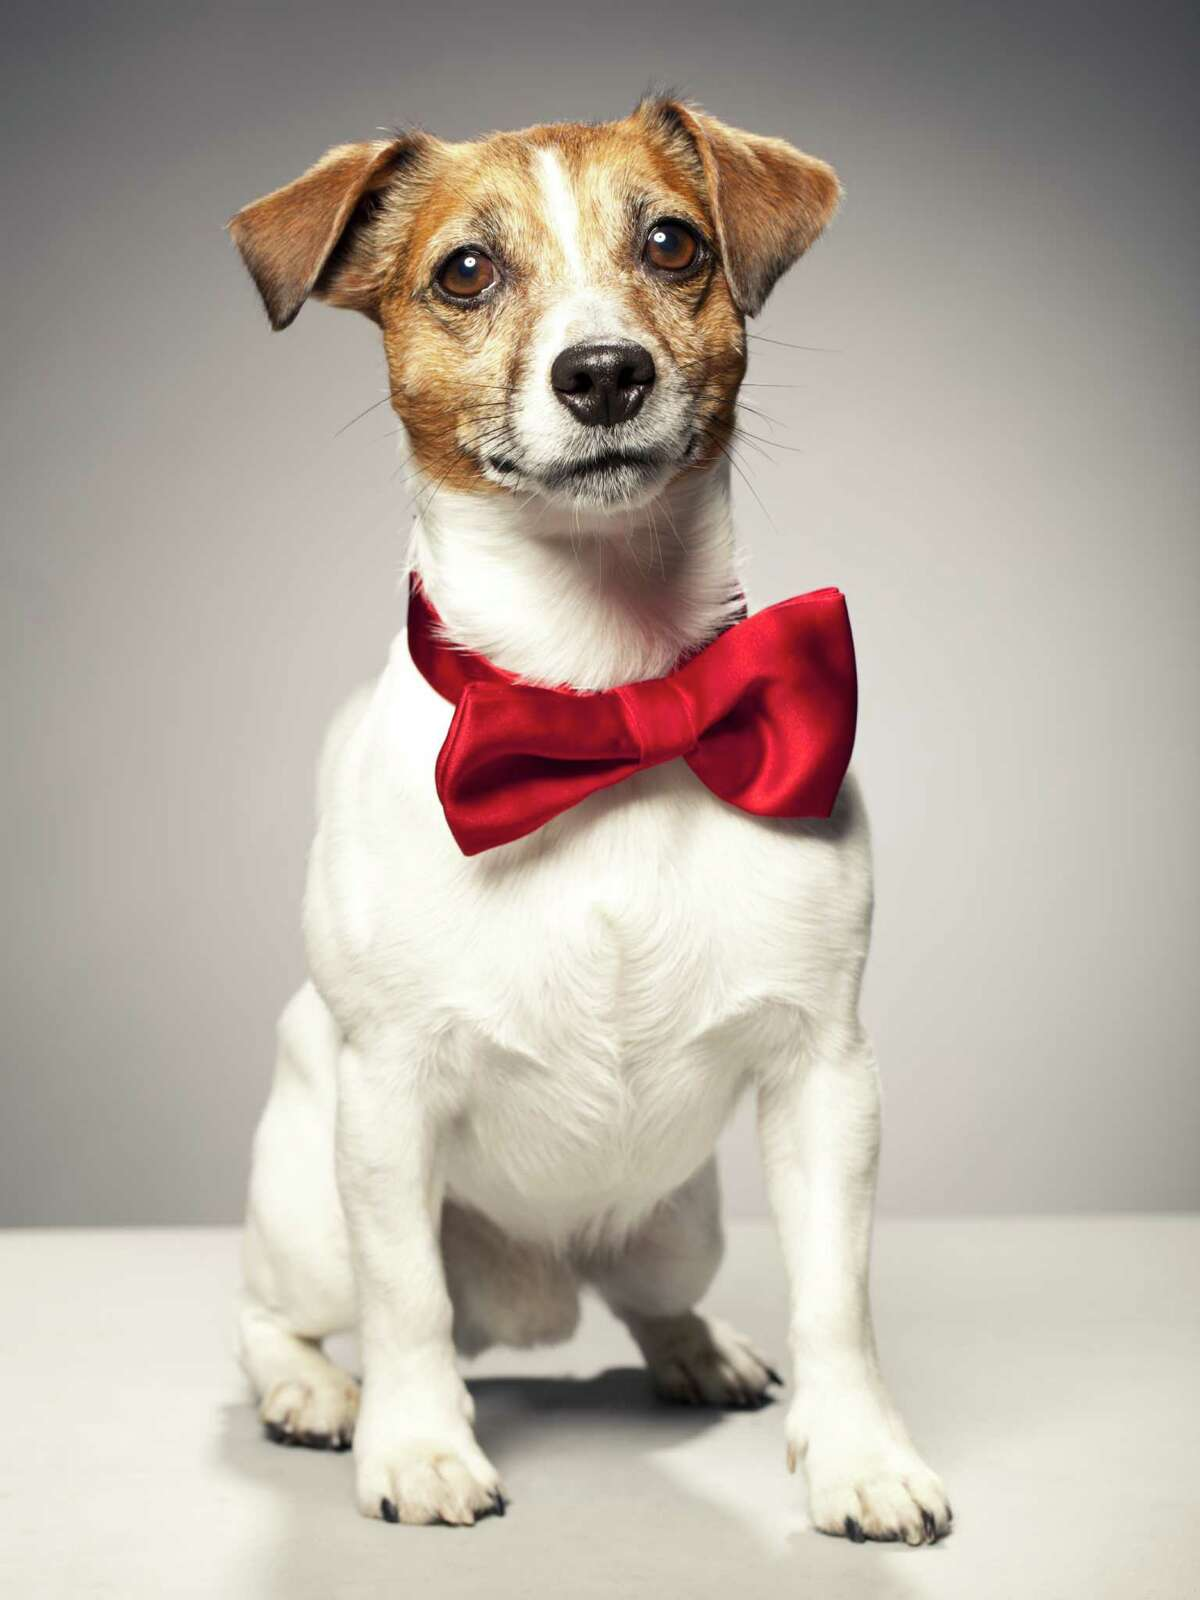 No. 20 - Jack Russell Terrier 2014: 189 2013: 257 2015 YTD (5/11/15): 63